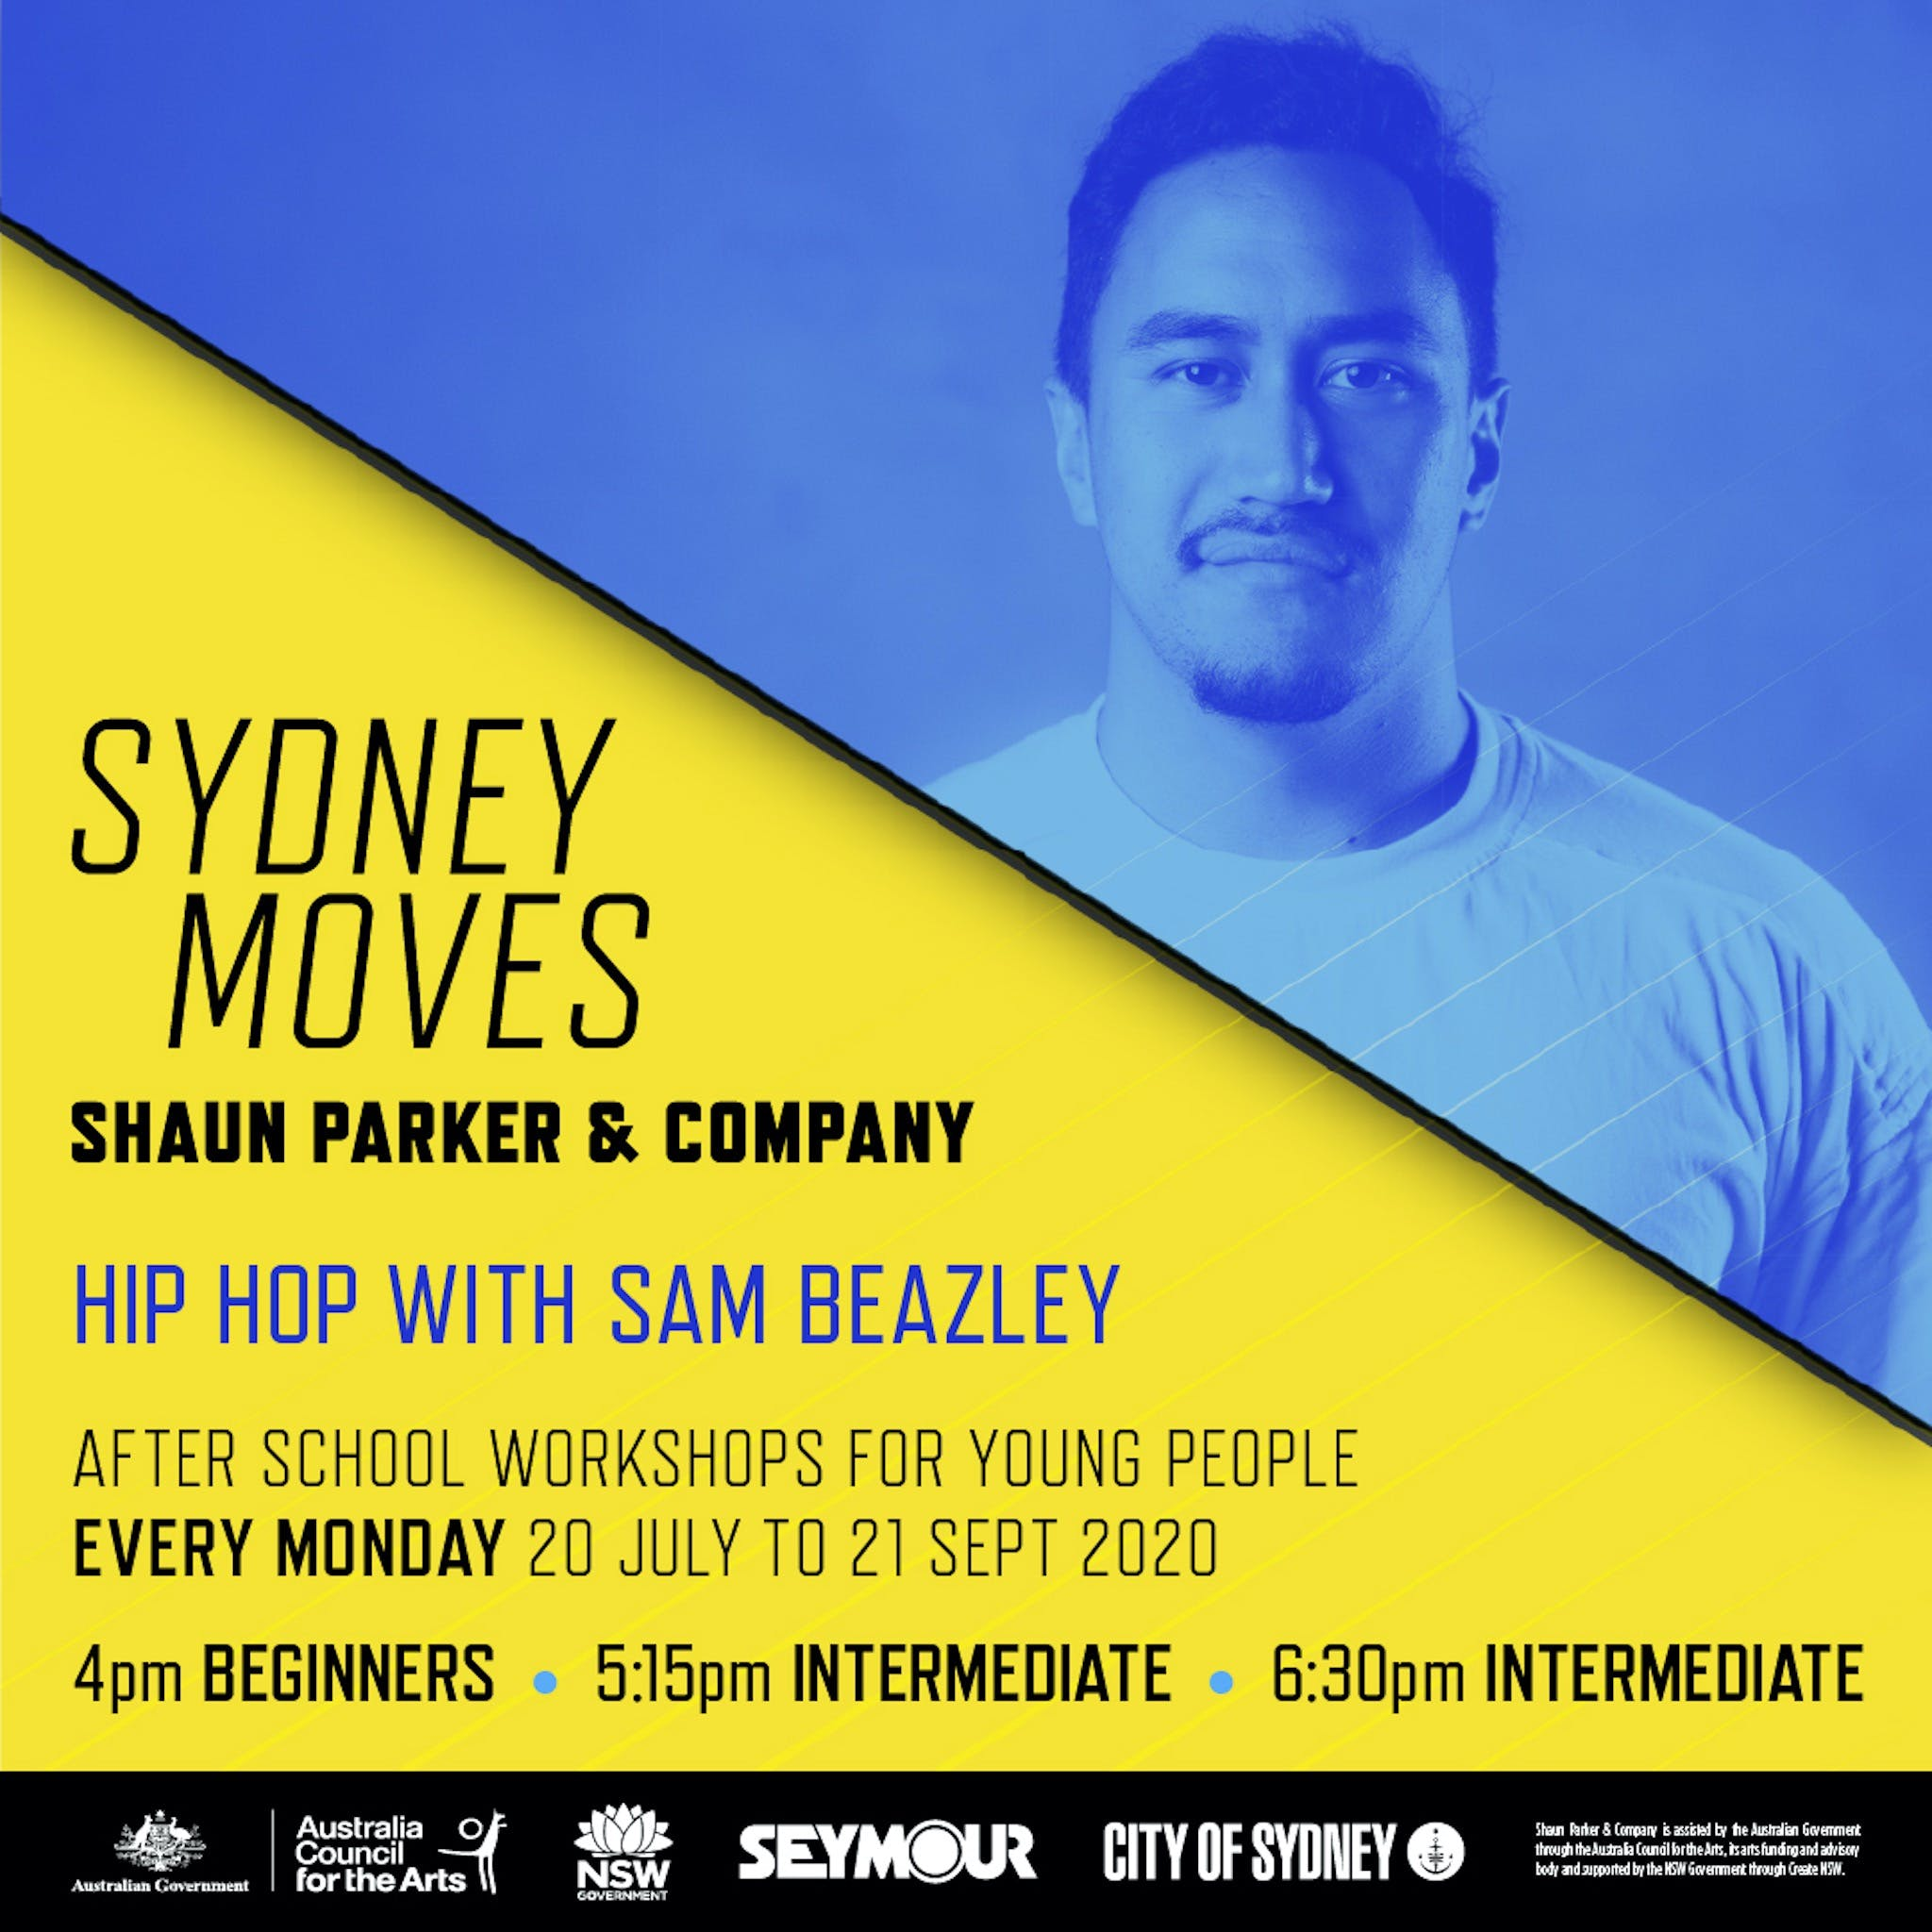 Sydney Moves - Intermediate Hip Hop with Sam Beazley - Victoria Tourism